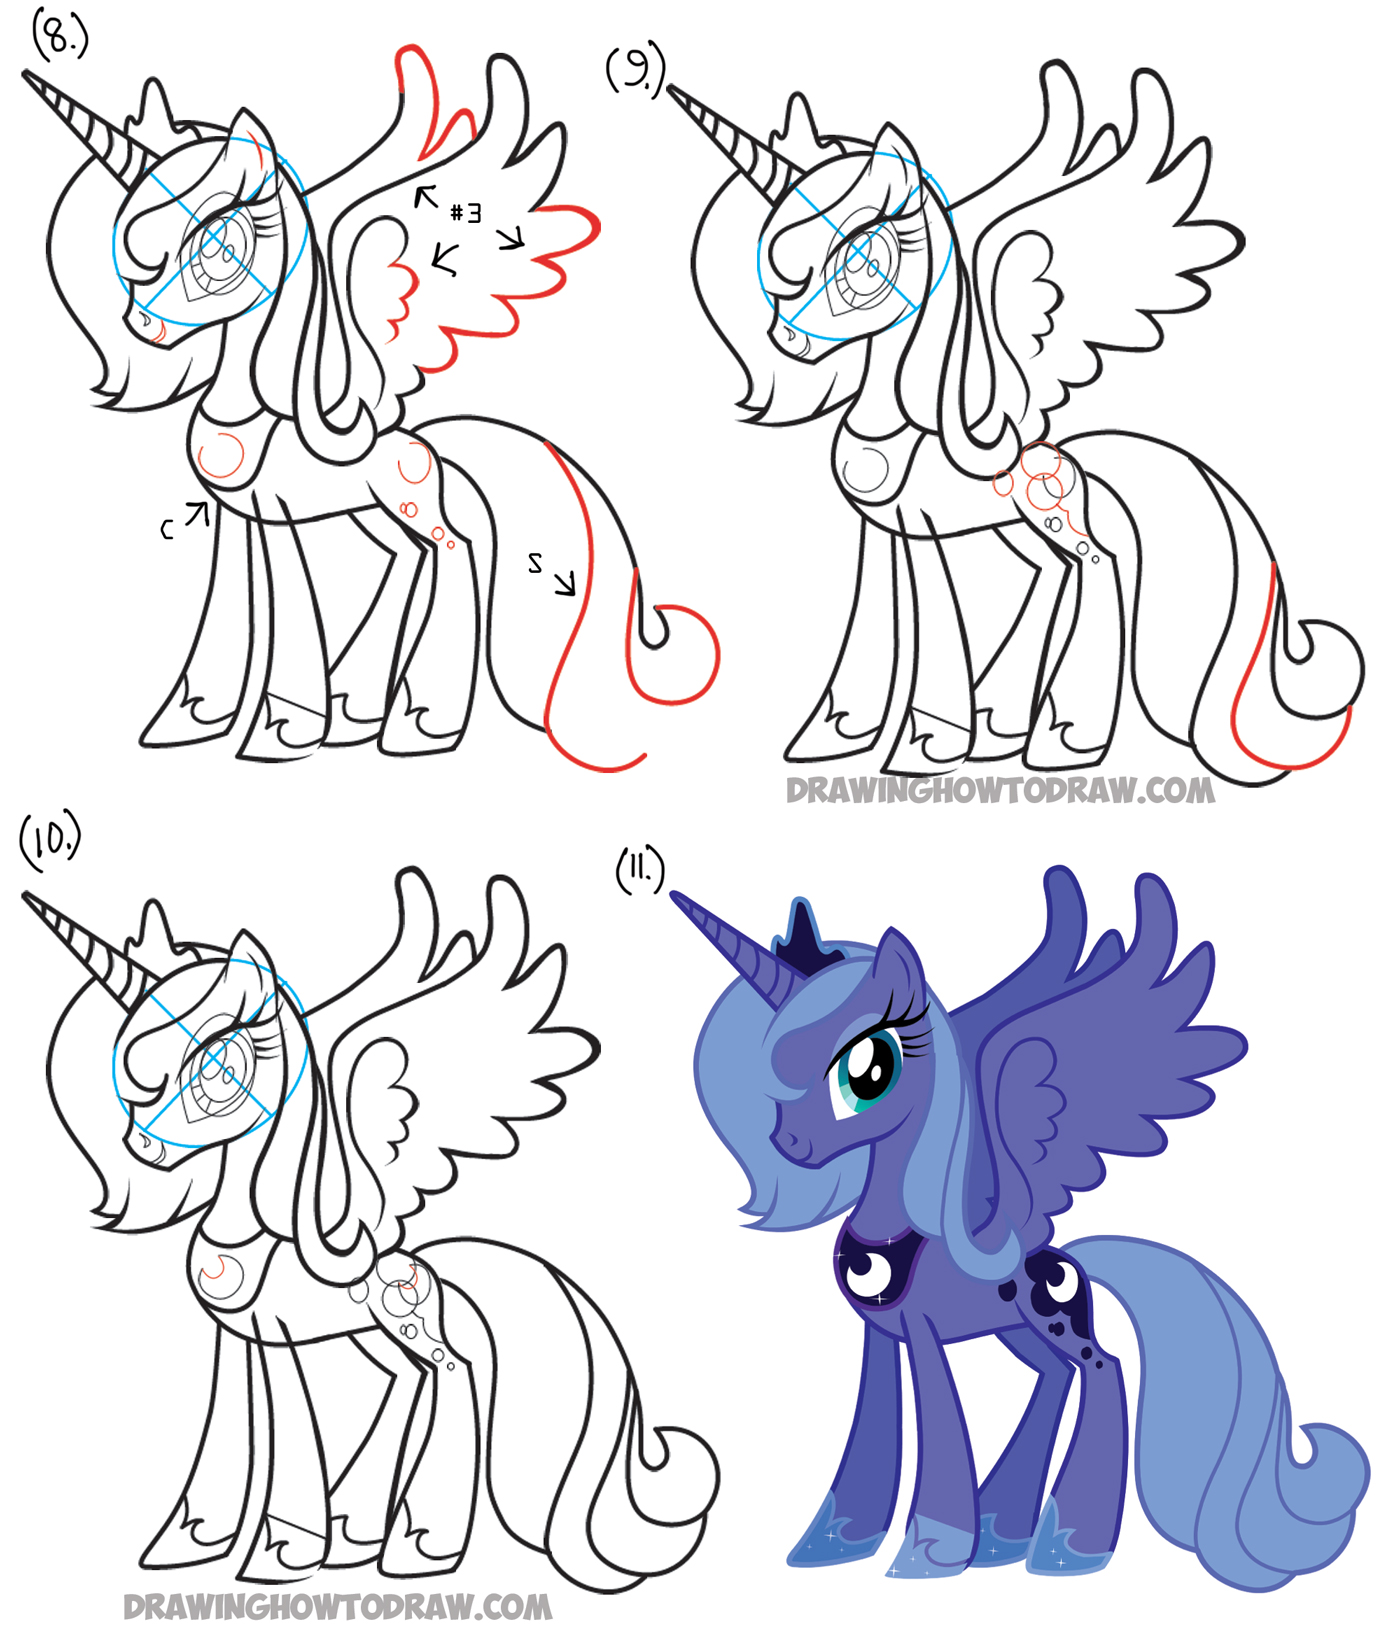 learn how to draw princess luna from my little pony friendship is magic simple steps